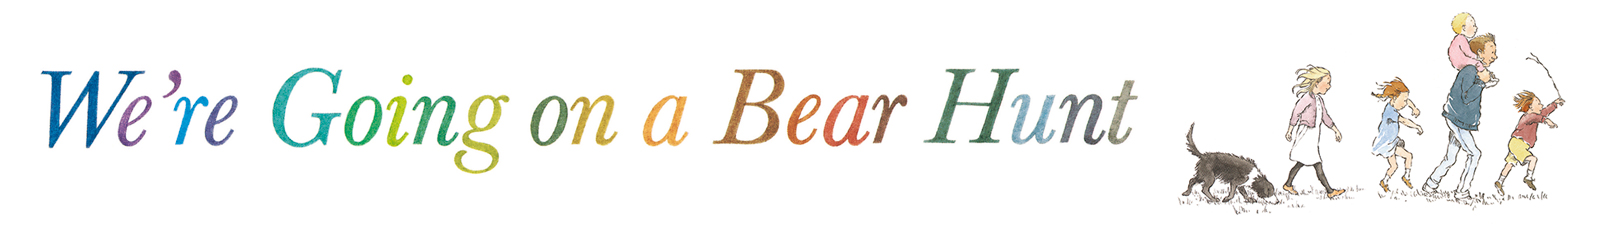 We're Going on a Bear Hunt 25th Anniversary Logo.